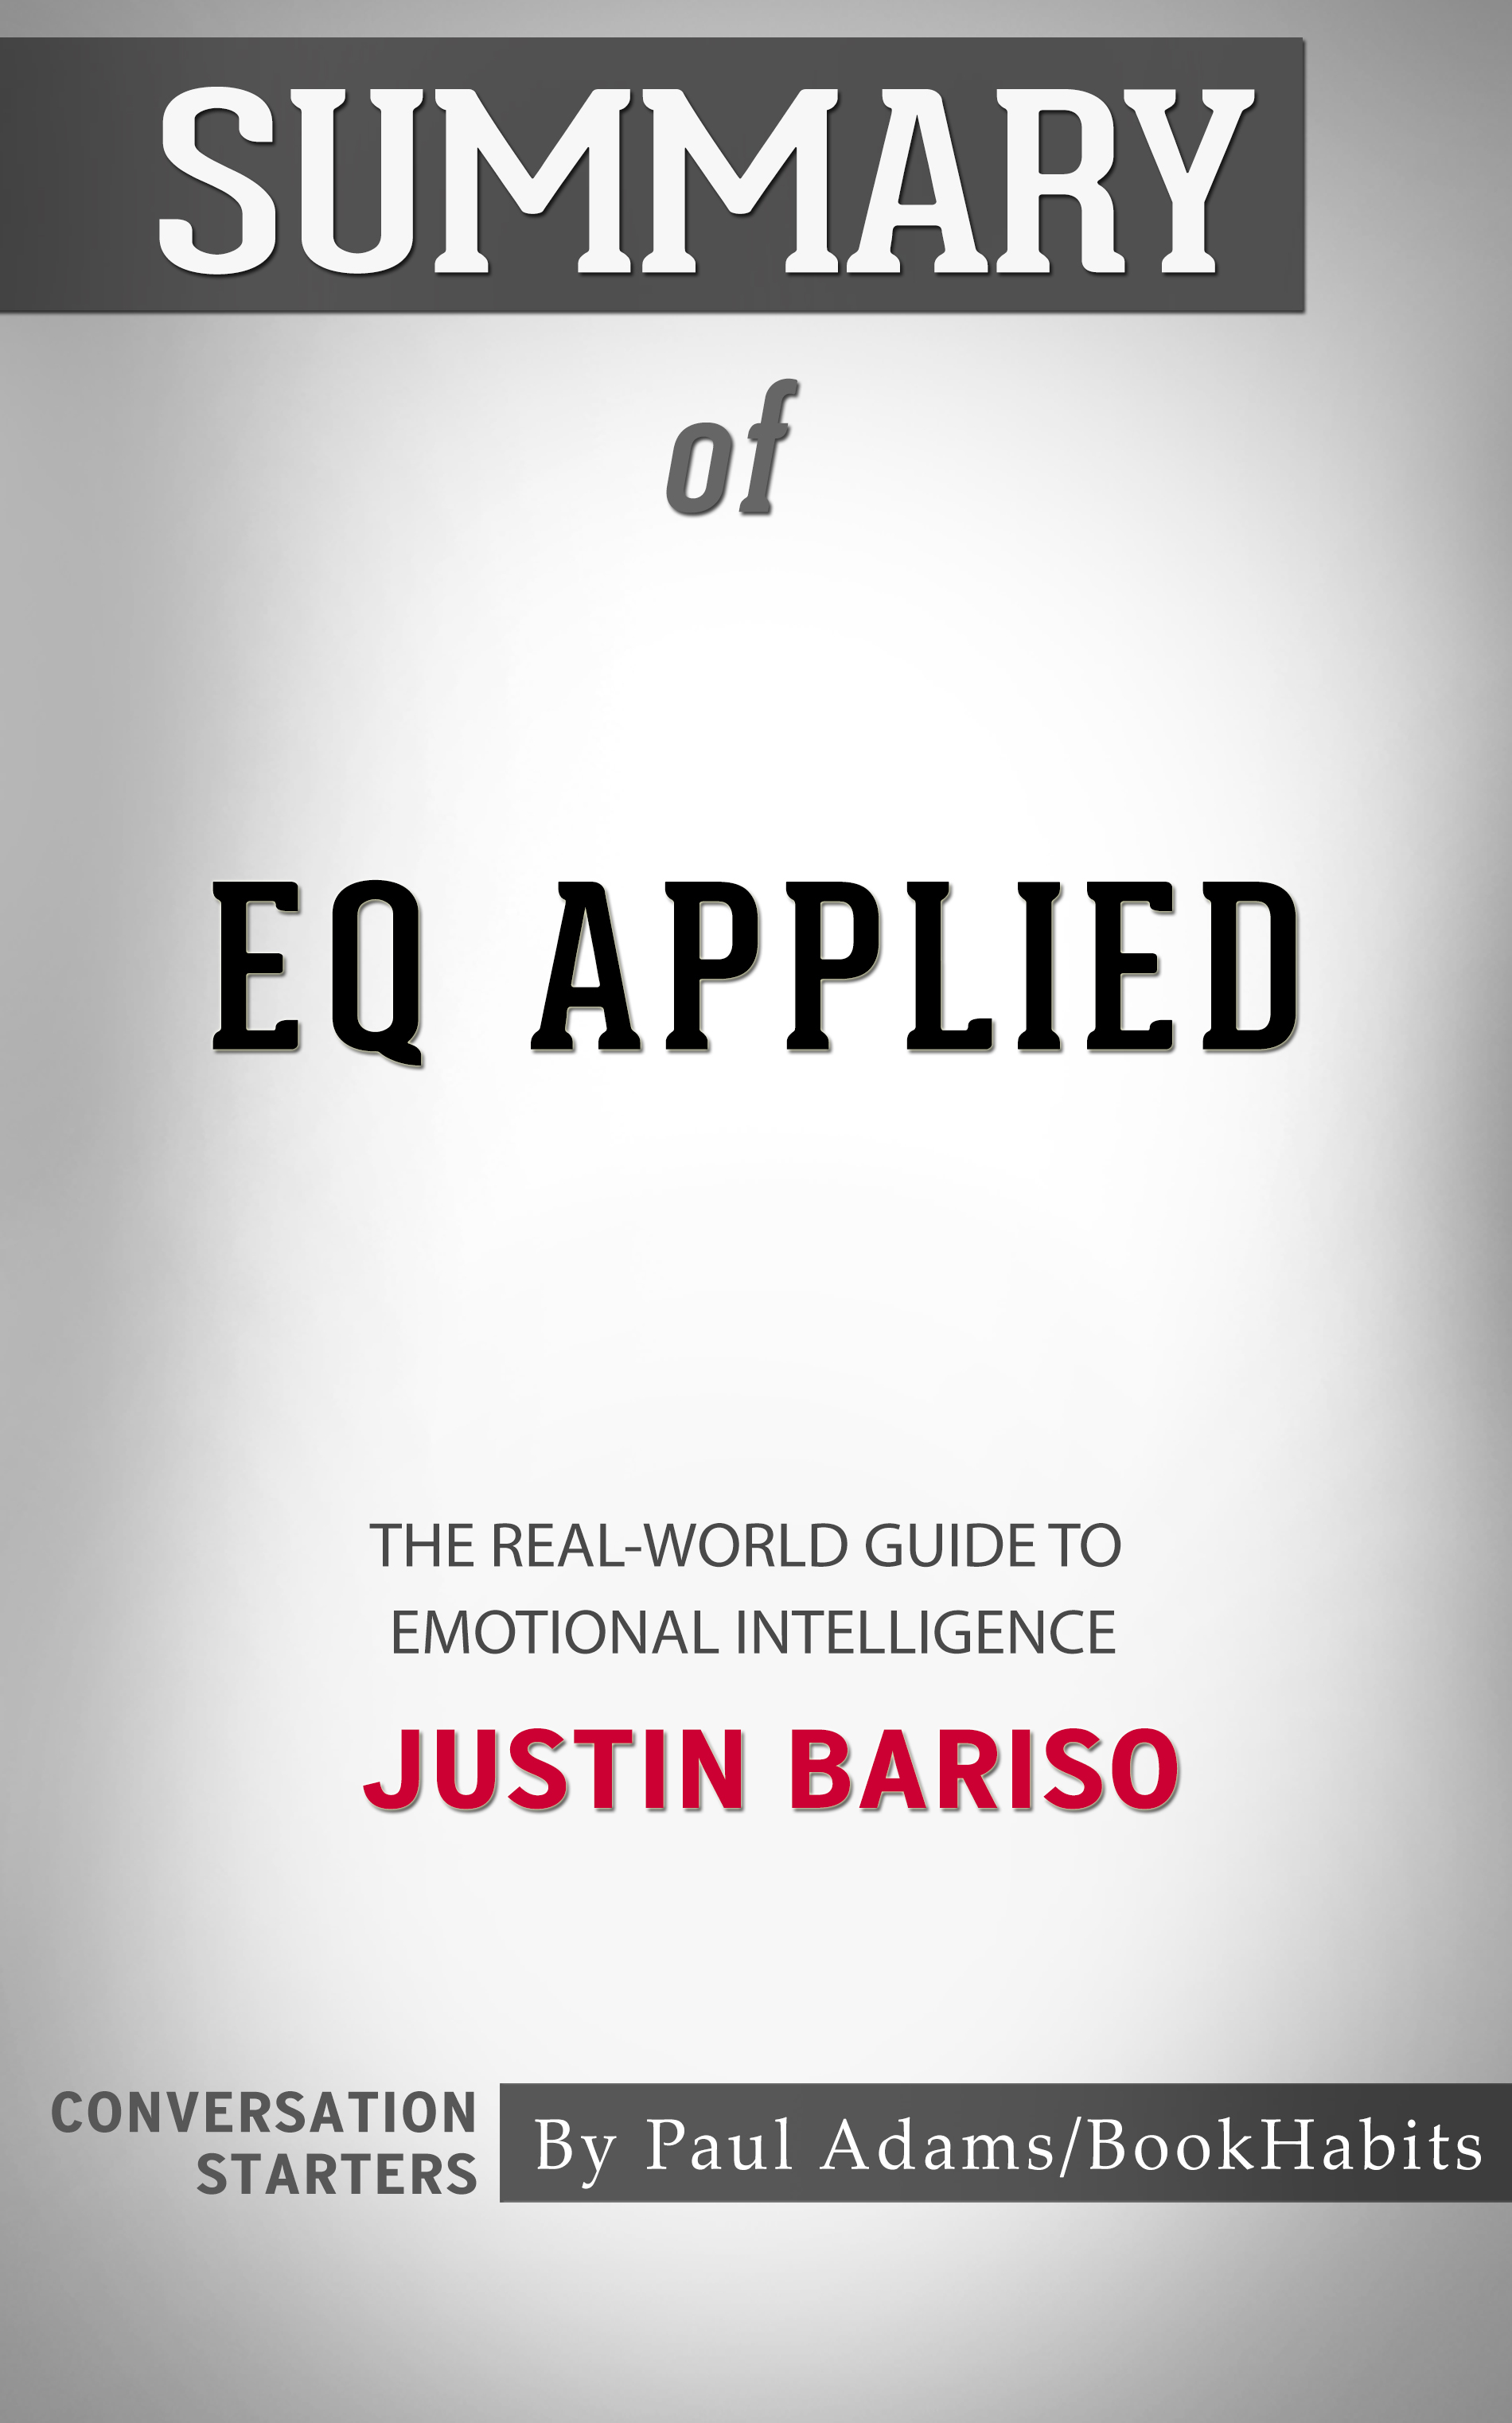 Summary of EQ Applied: The Real-World Guide to Emotional Intelligence by  Justin Bariso | Conversation Starters, an Ebook by Paul Adams